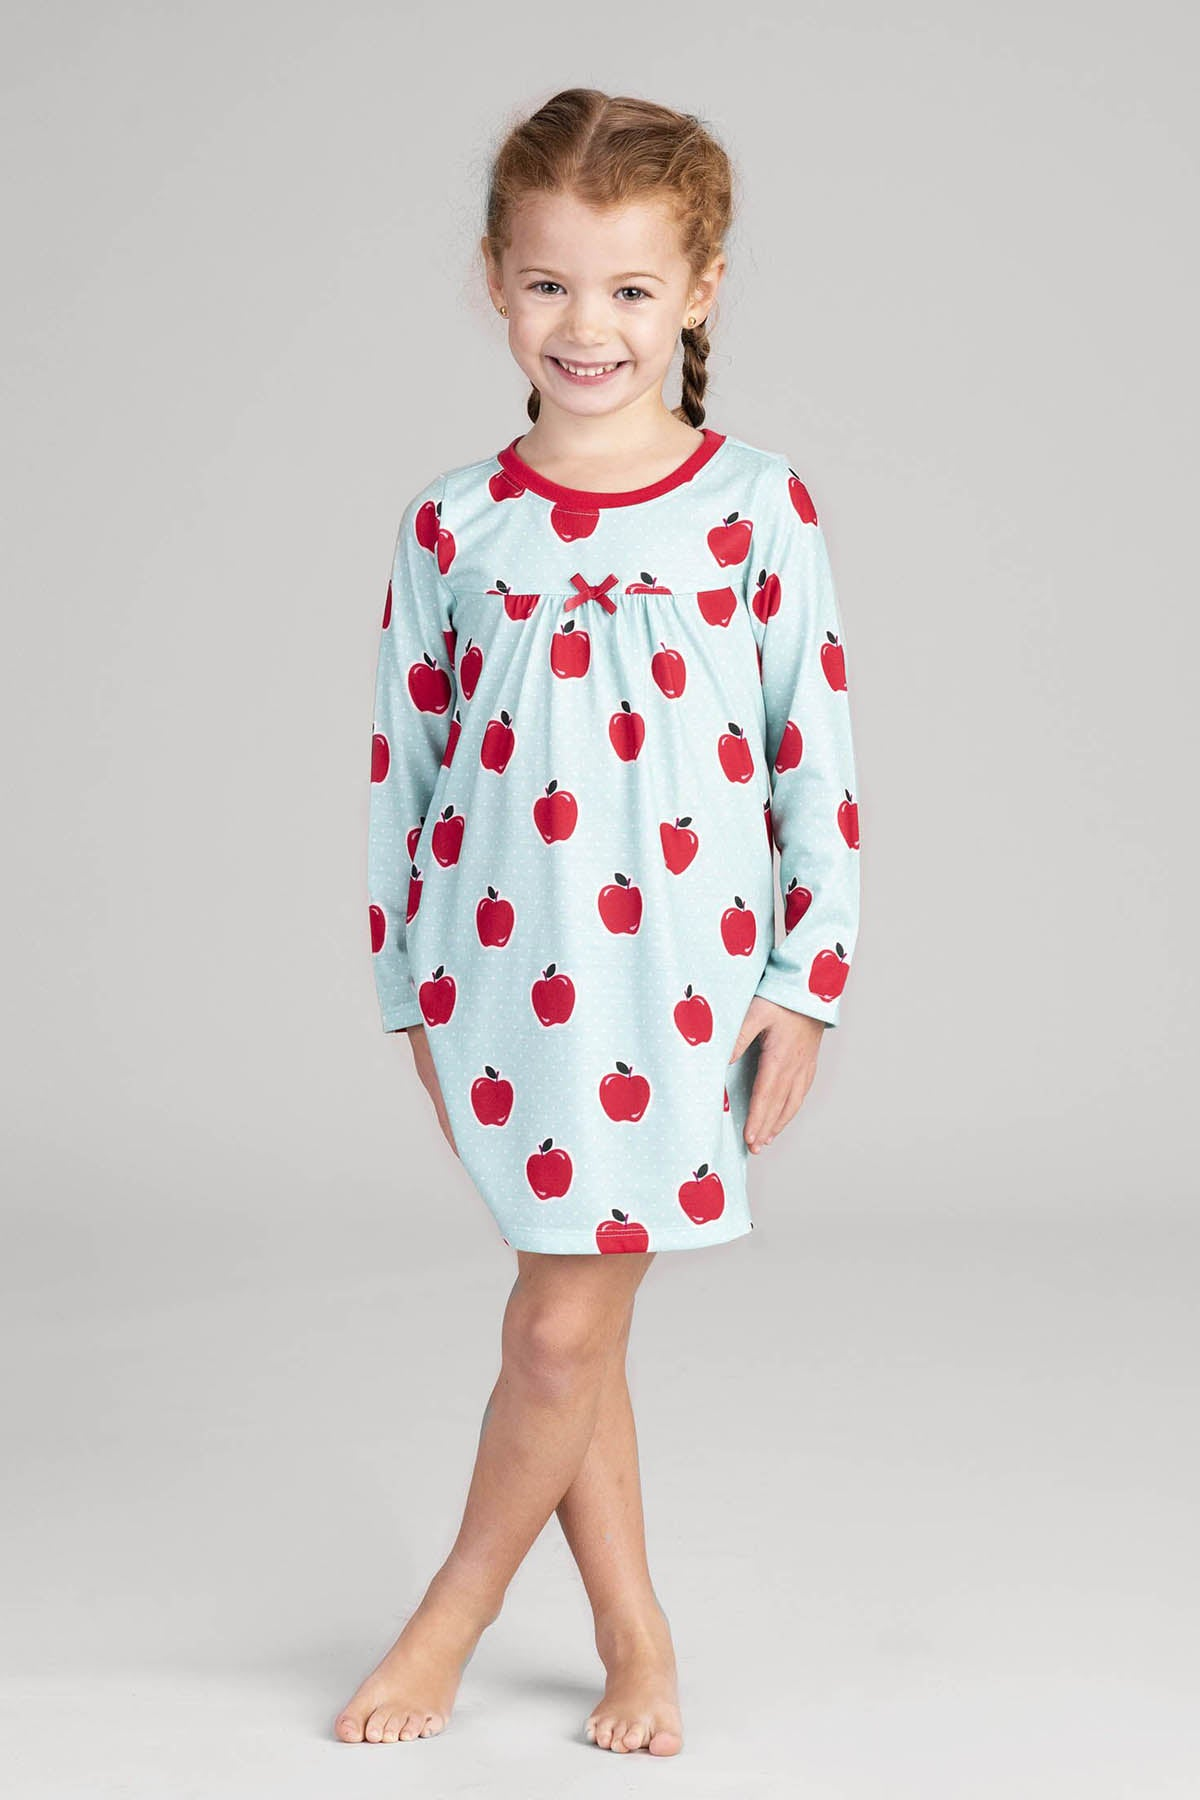 Hatley Apples And Dots Girls Nightgown